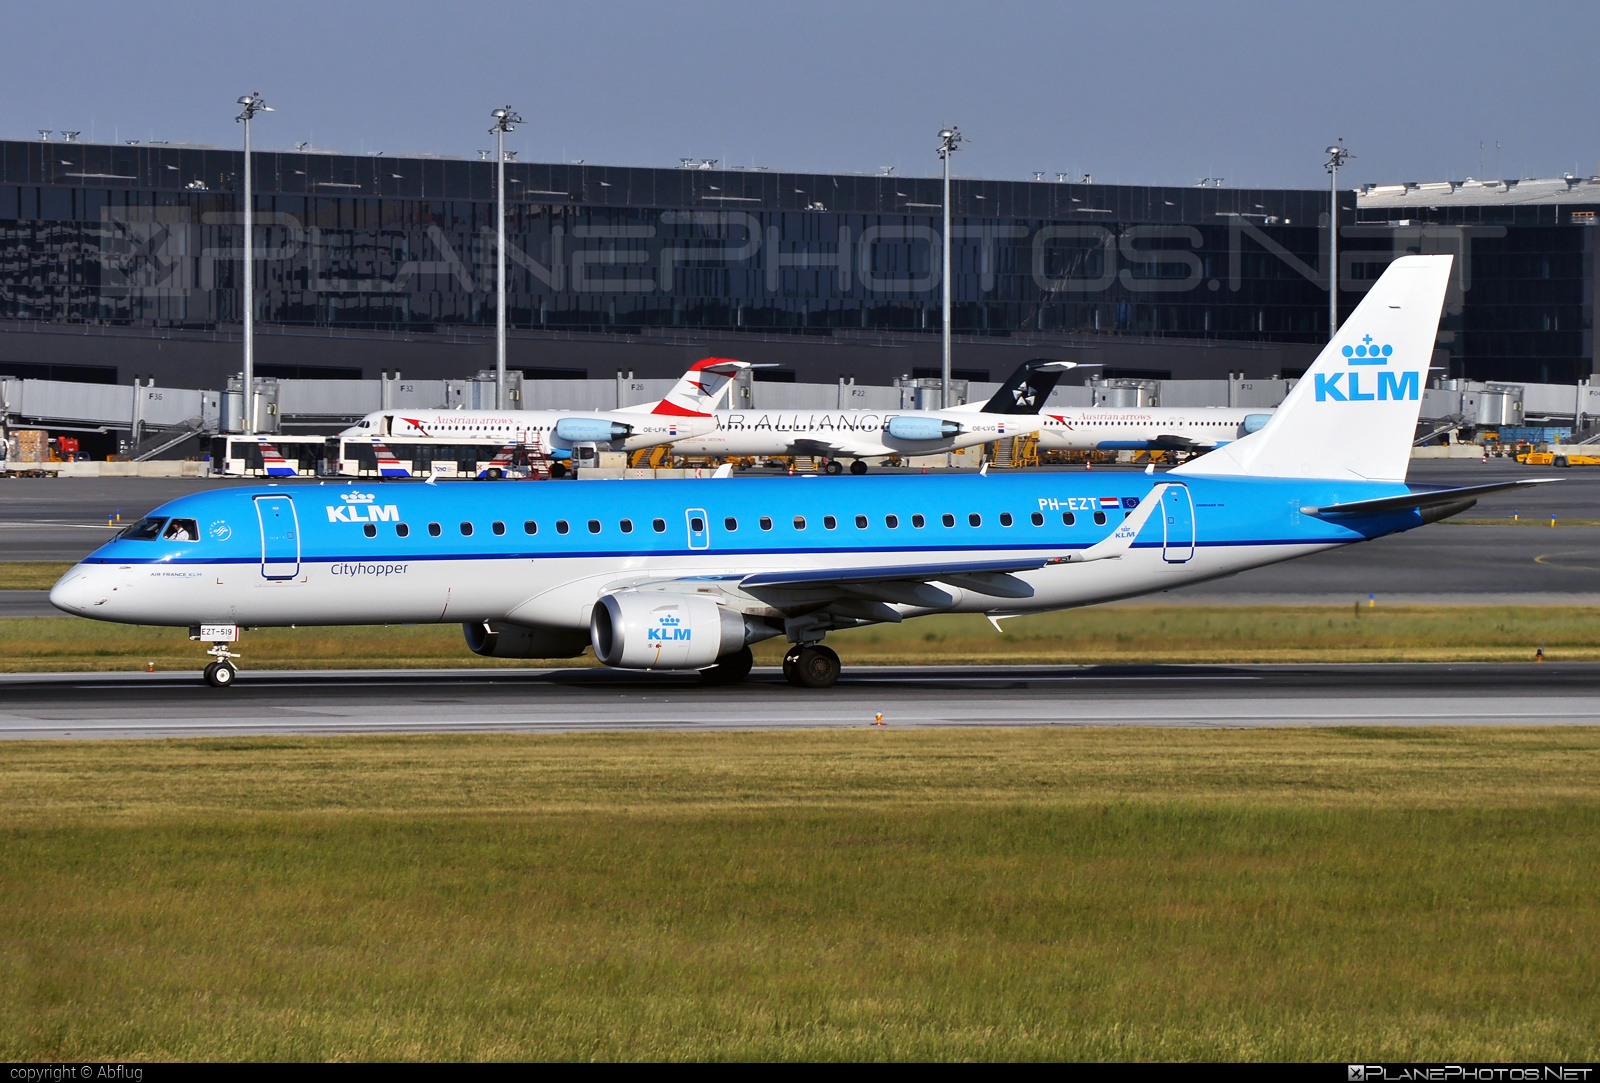 Embraer 190-100STD - PH-EZT operated by KLM Cityhopper #e190 #embraer #embraer190 #embraer190std #klm #klmcityhopper